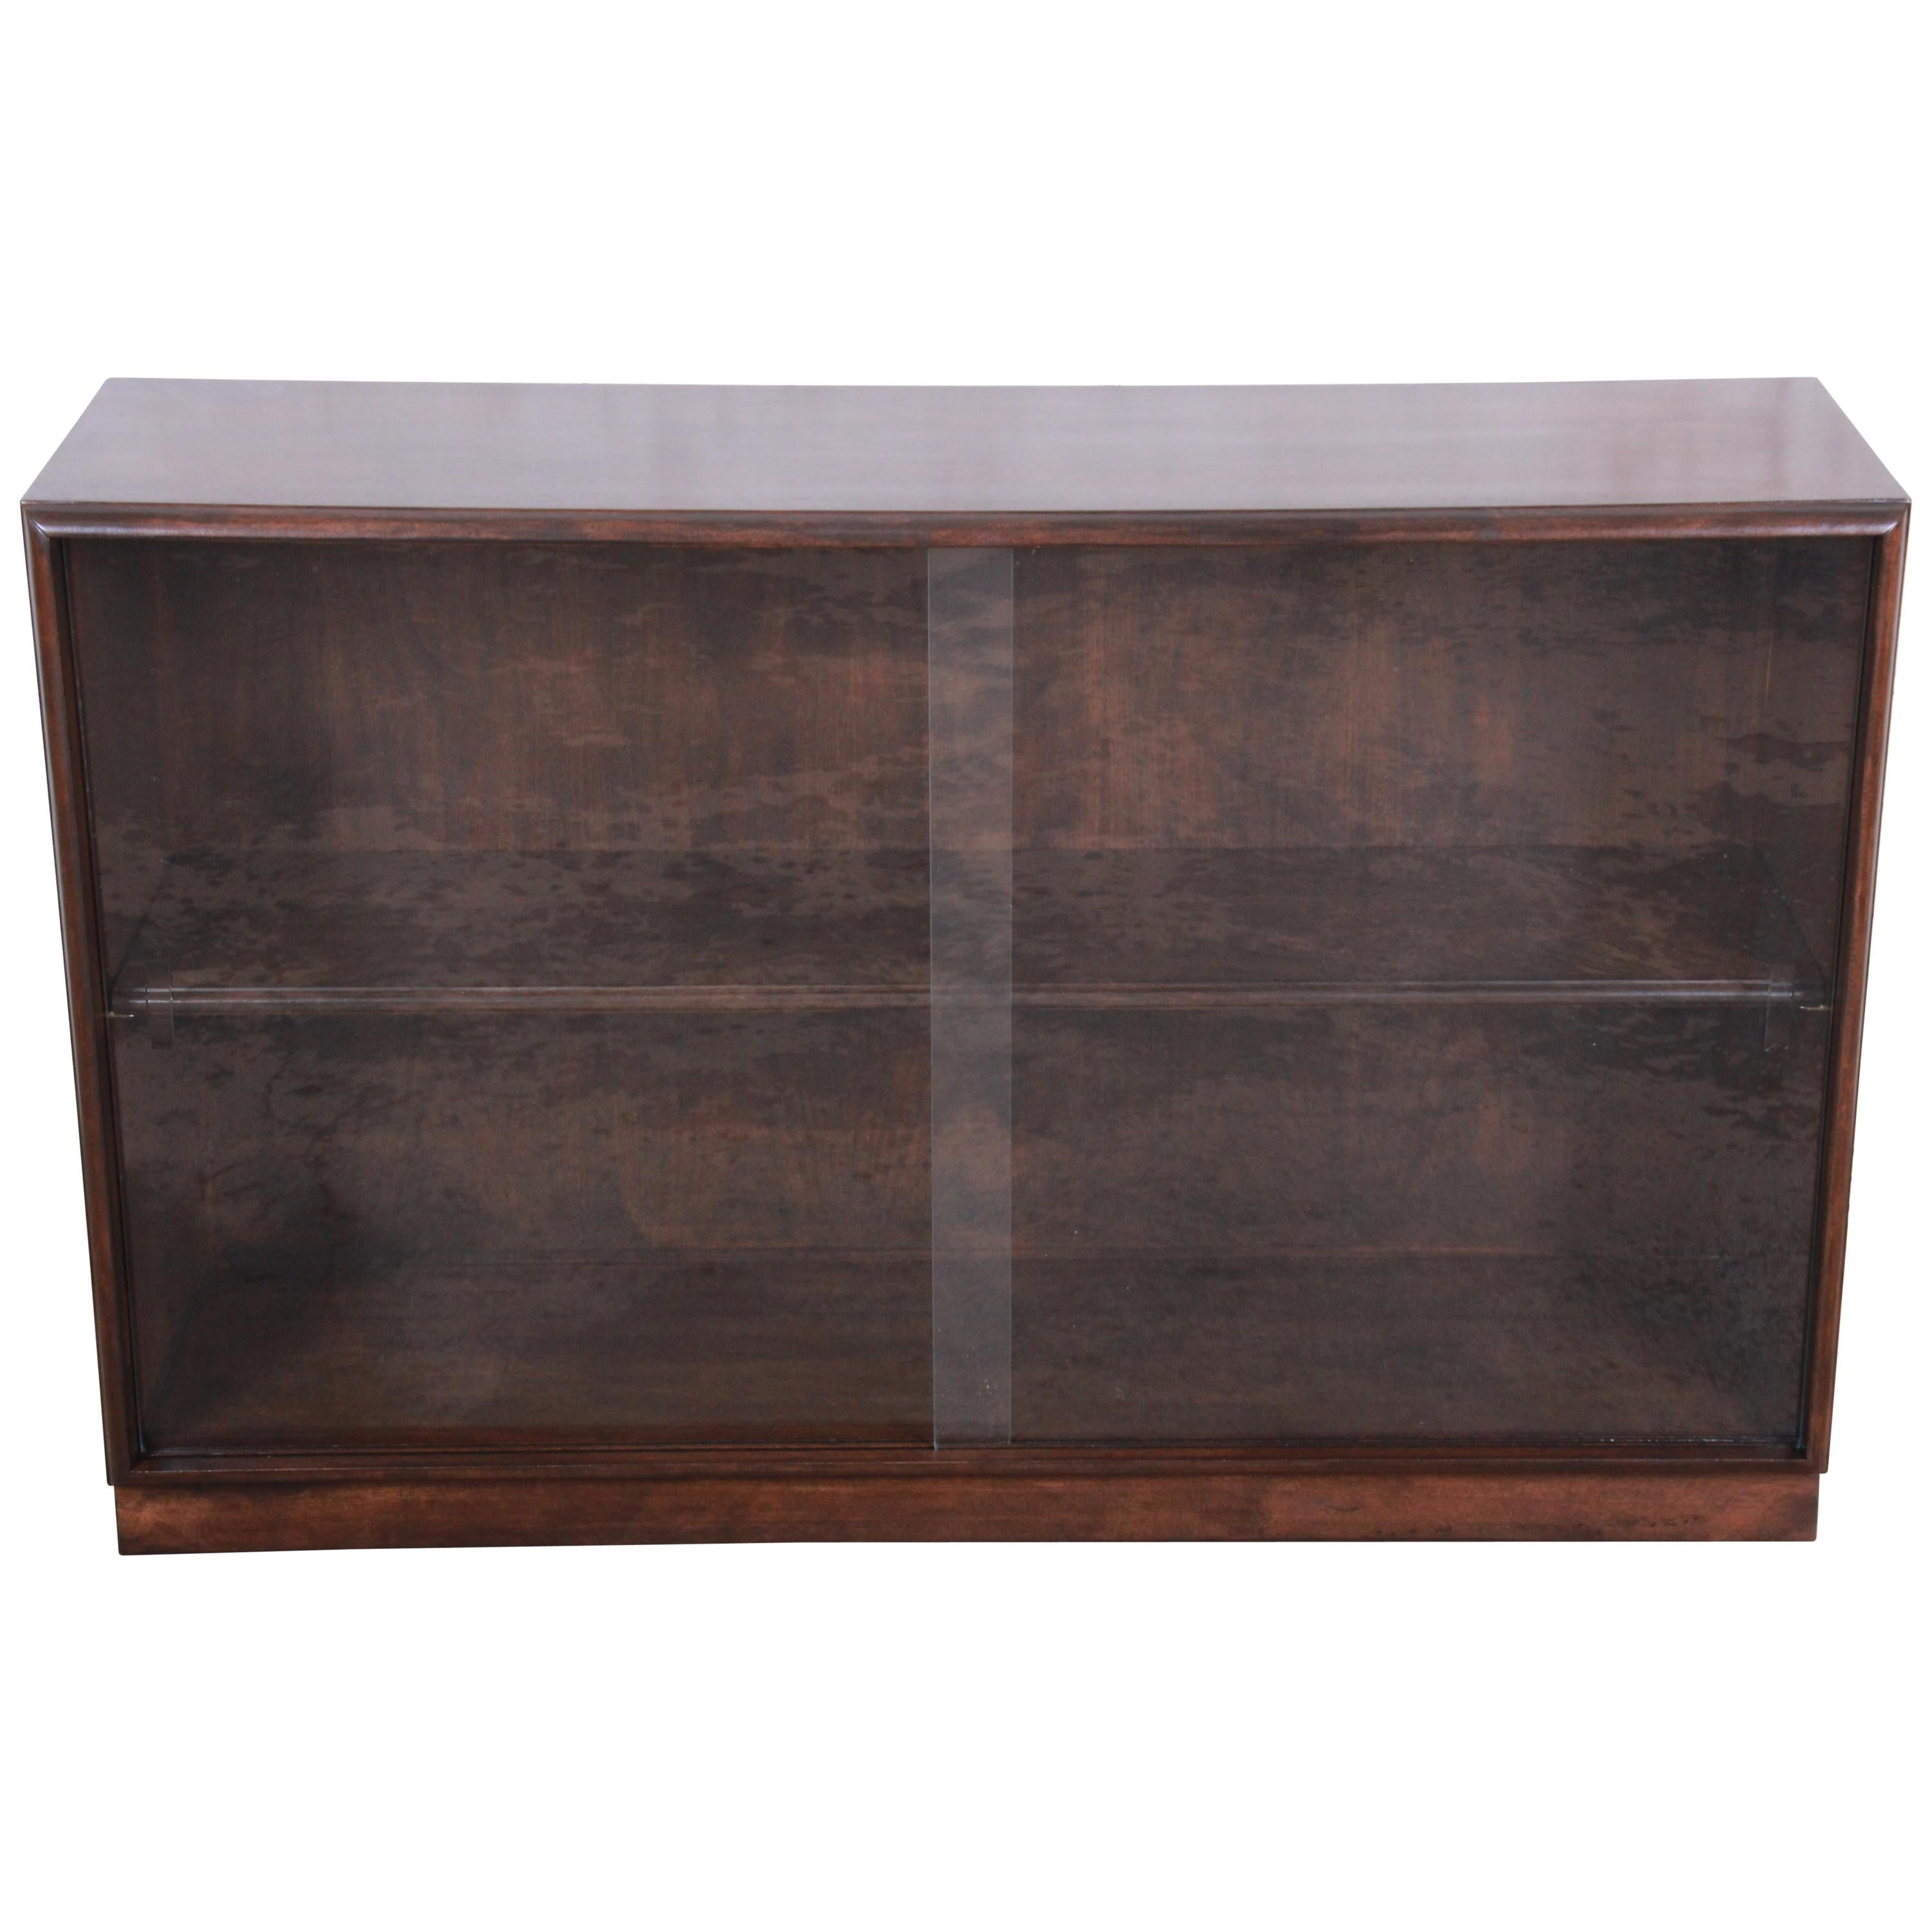 Widdicomb furniture co dressers tables more 303 for sale at 1stdibs